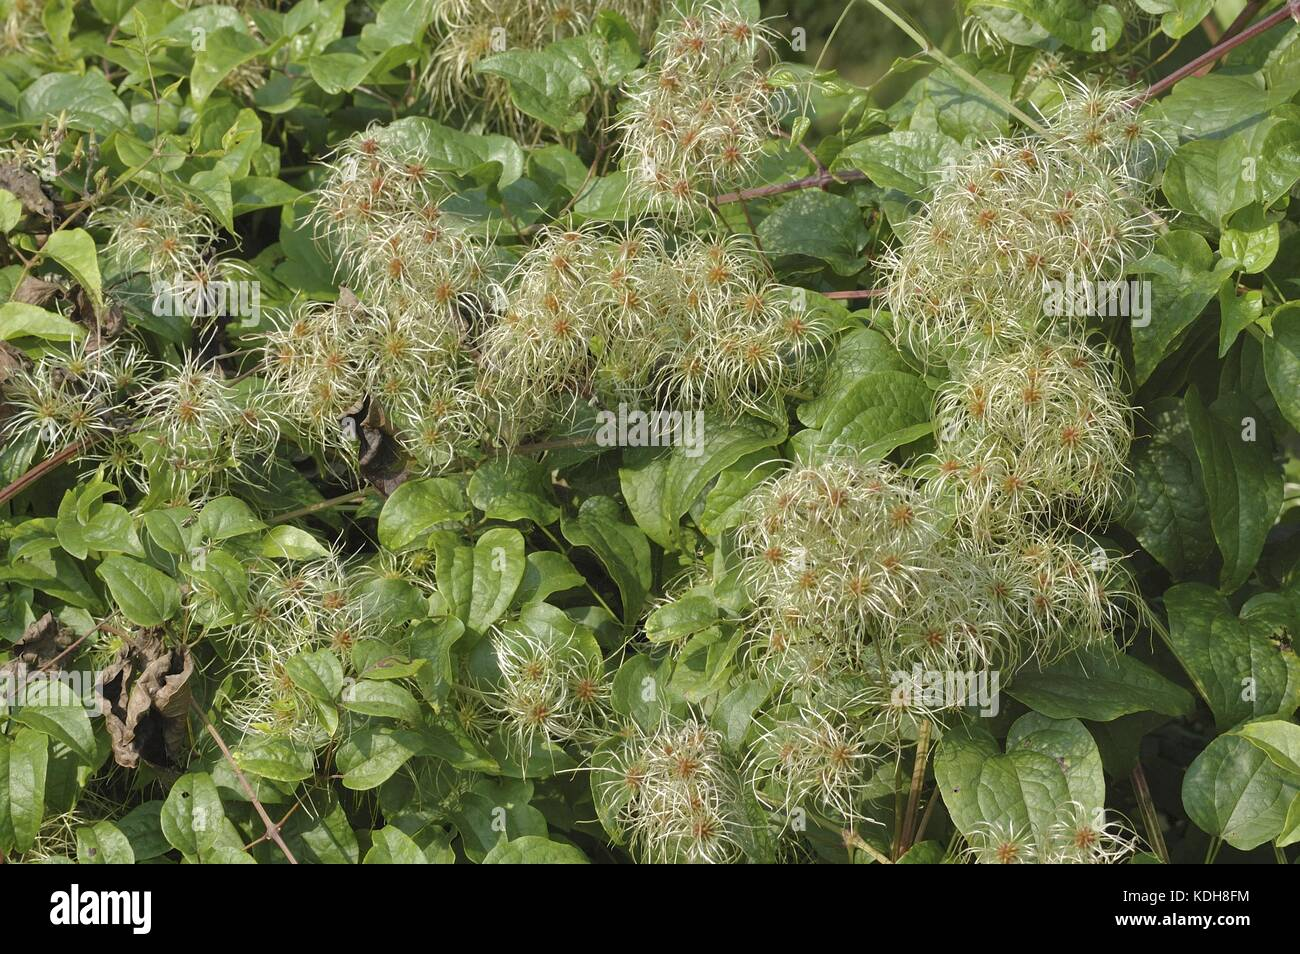 Old Man's Beard - Traveler's Joy (Clematis vitalba) flowers becoming fruits at the end of the summer - Stock Image